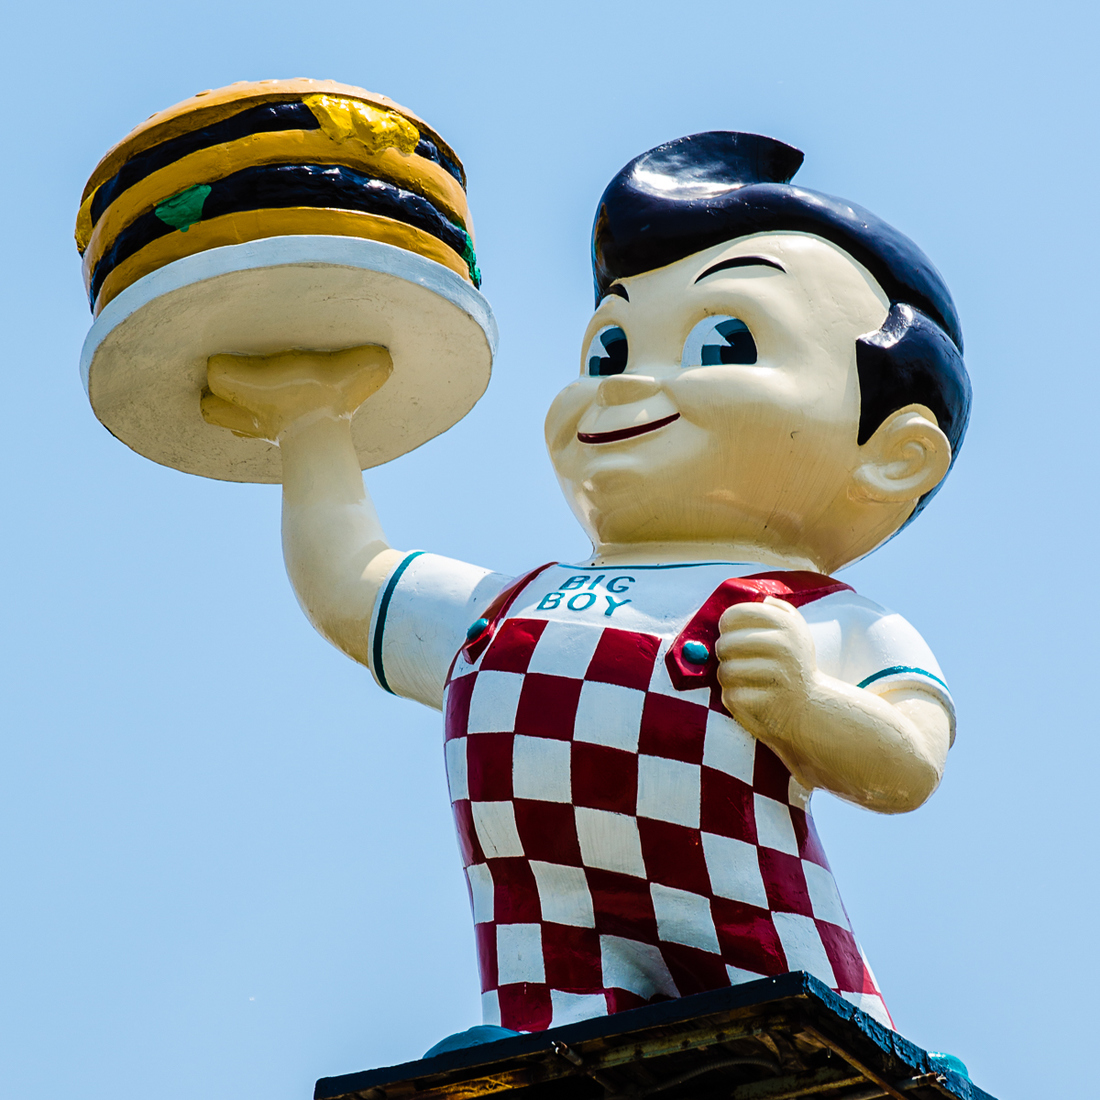 Suburbia and Mich-elaneous Livonia, Michigan - Big Boy